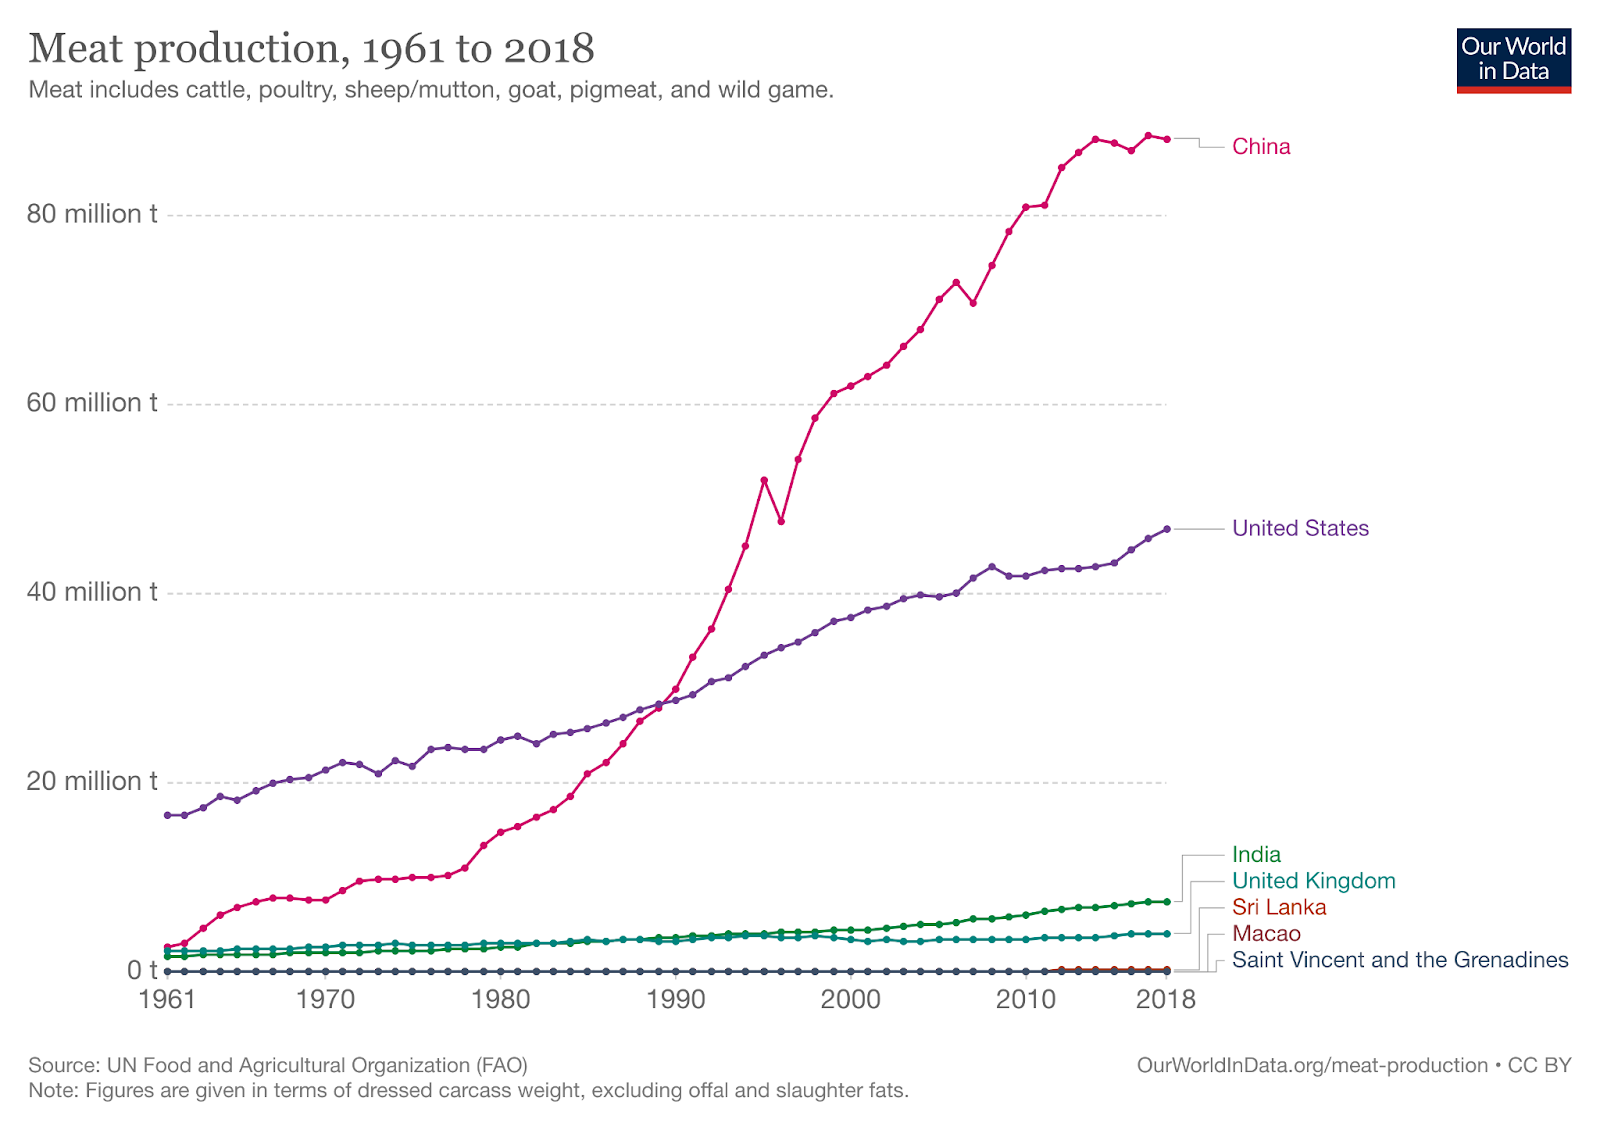 a graph showing the amount of meat production from 1961 to 2018, with China making the most meat